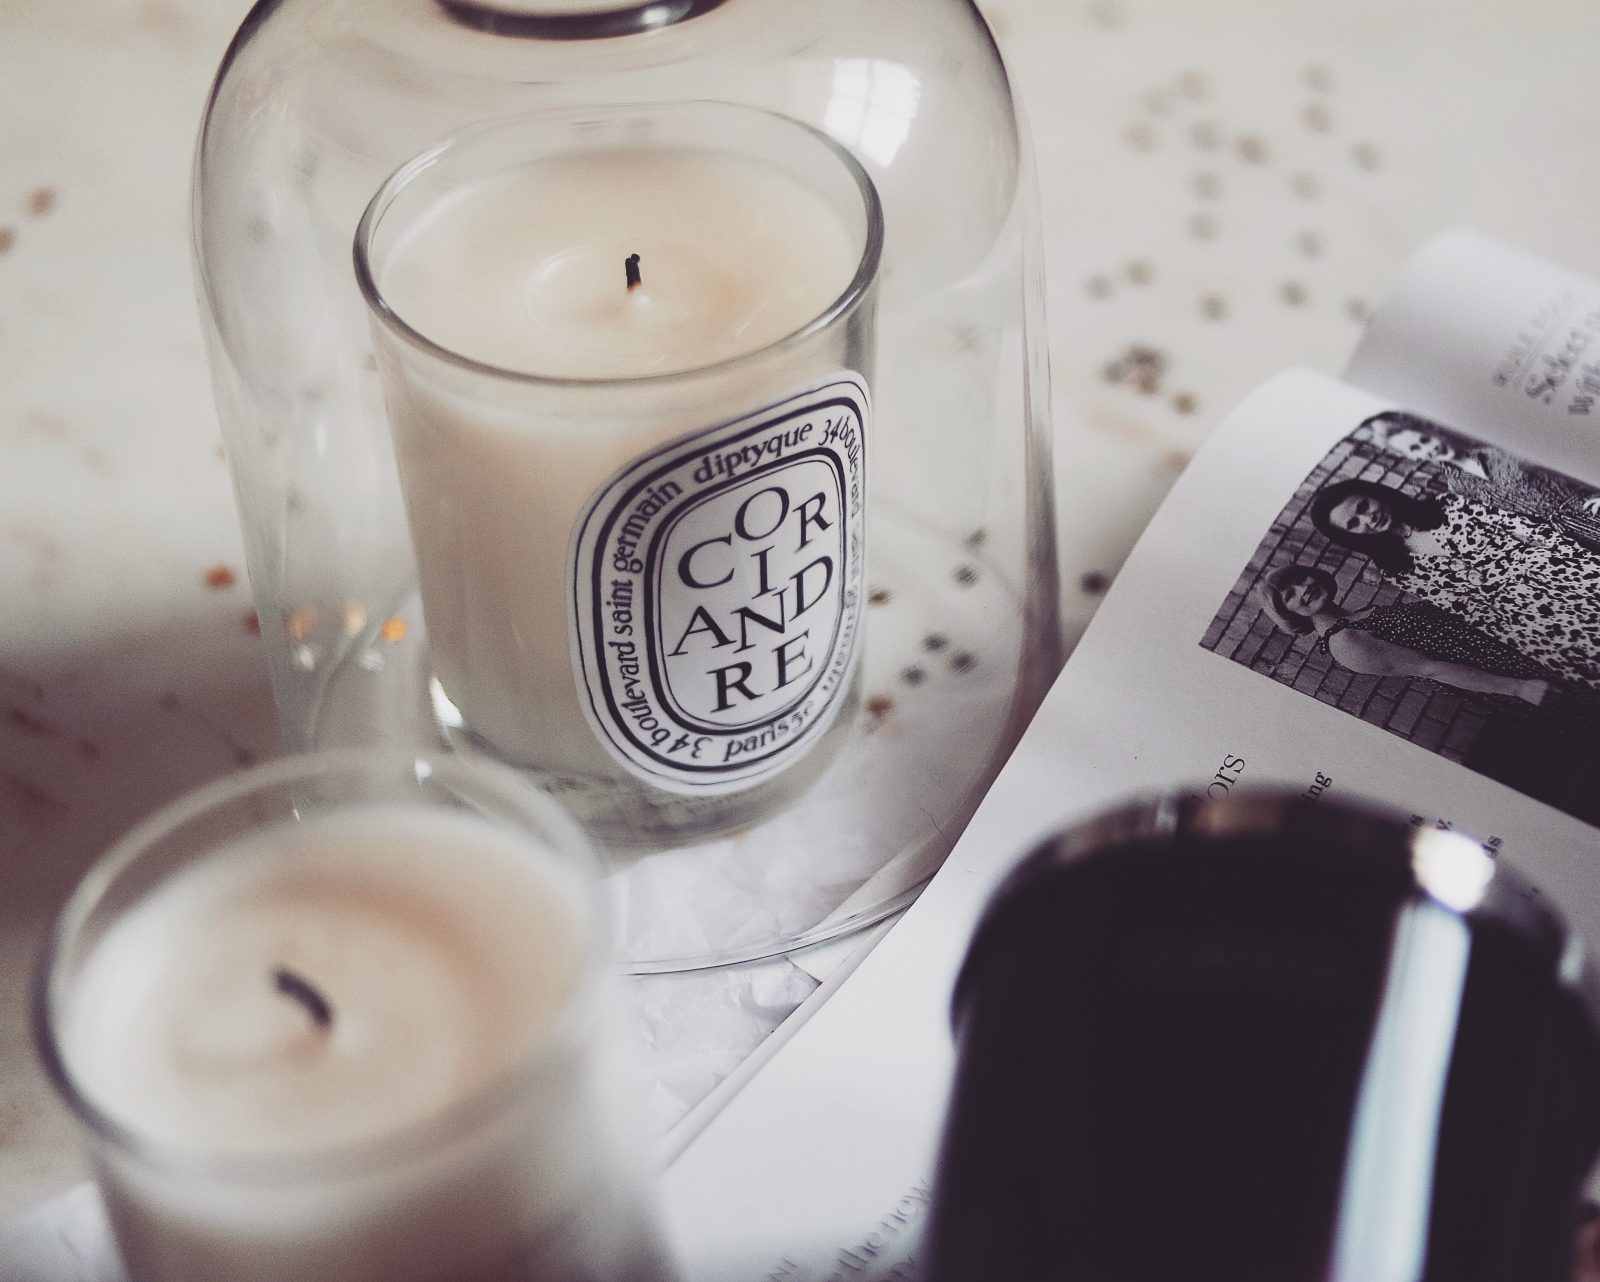 Gift guide for her - Diptyque Candle